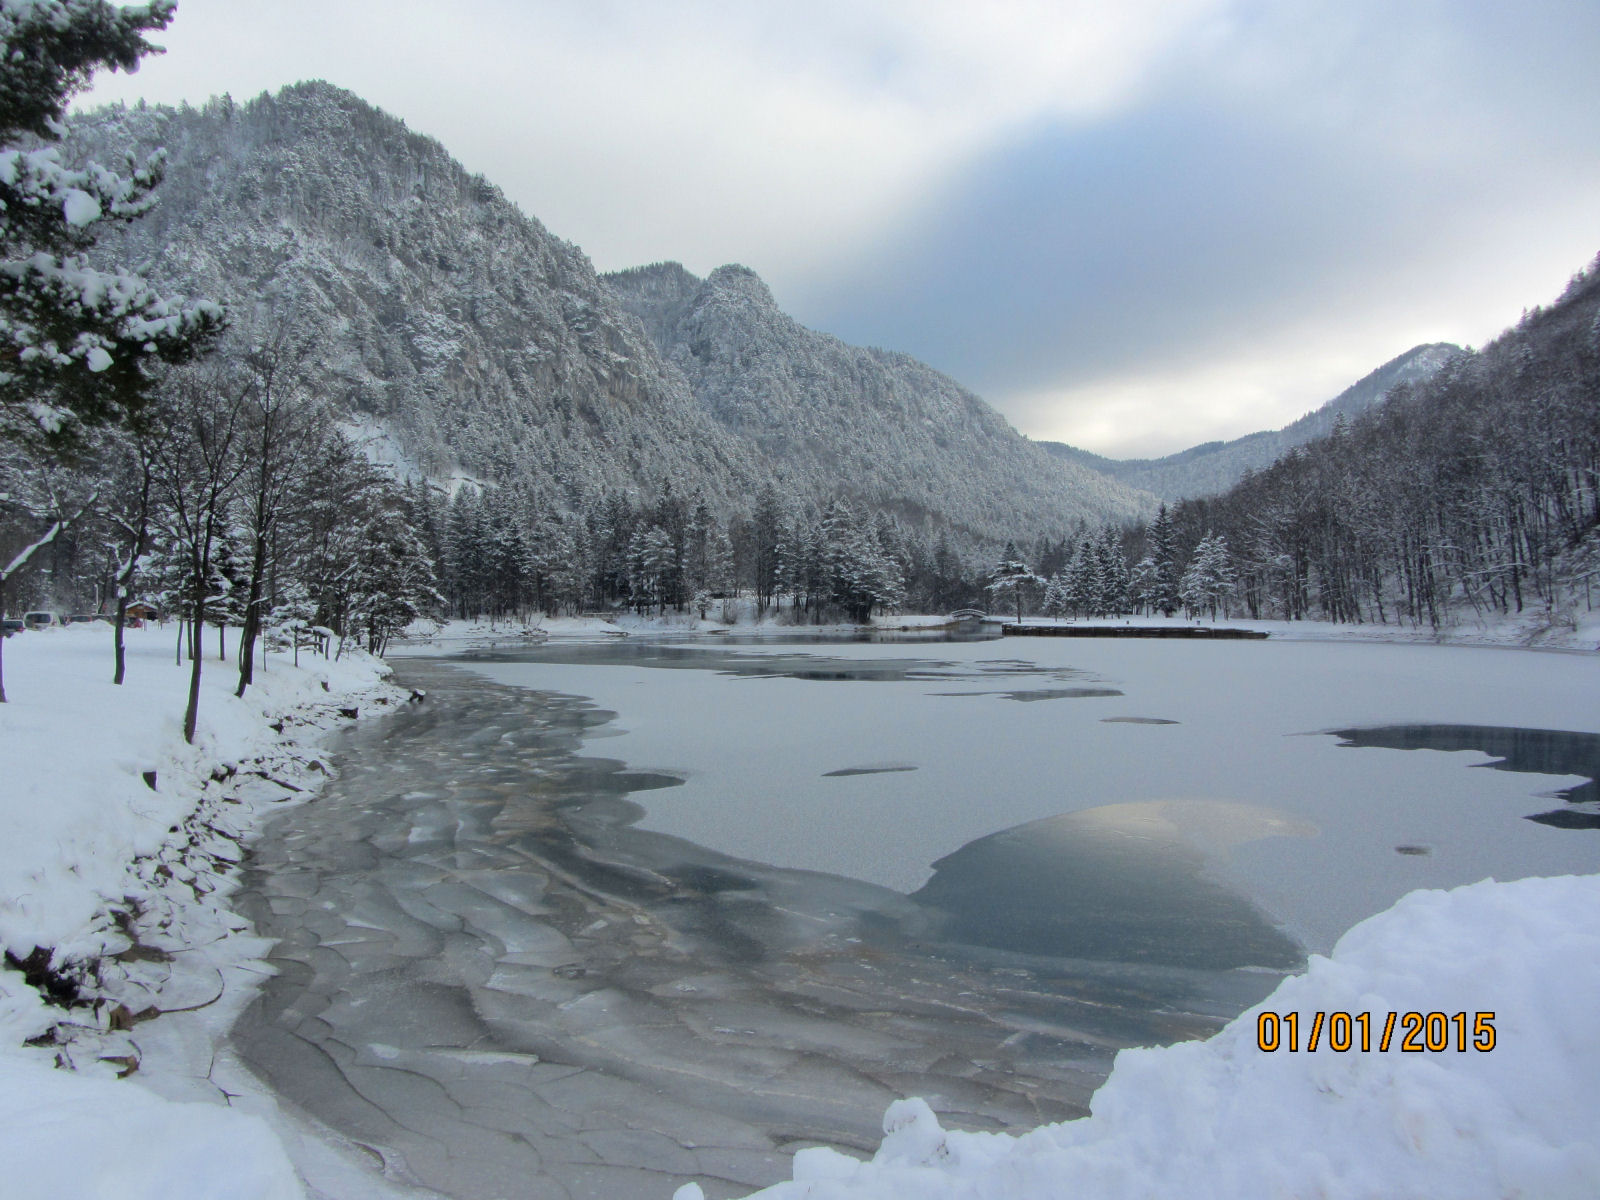 Lake Zavrsnica frozen in winter